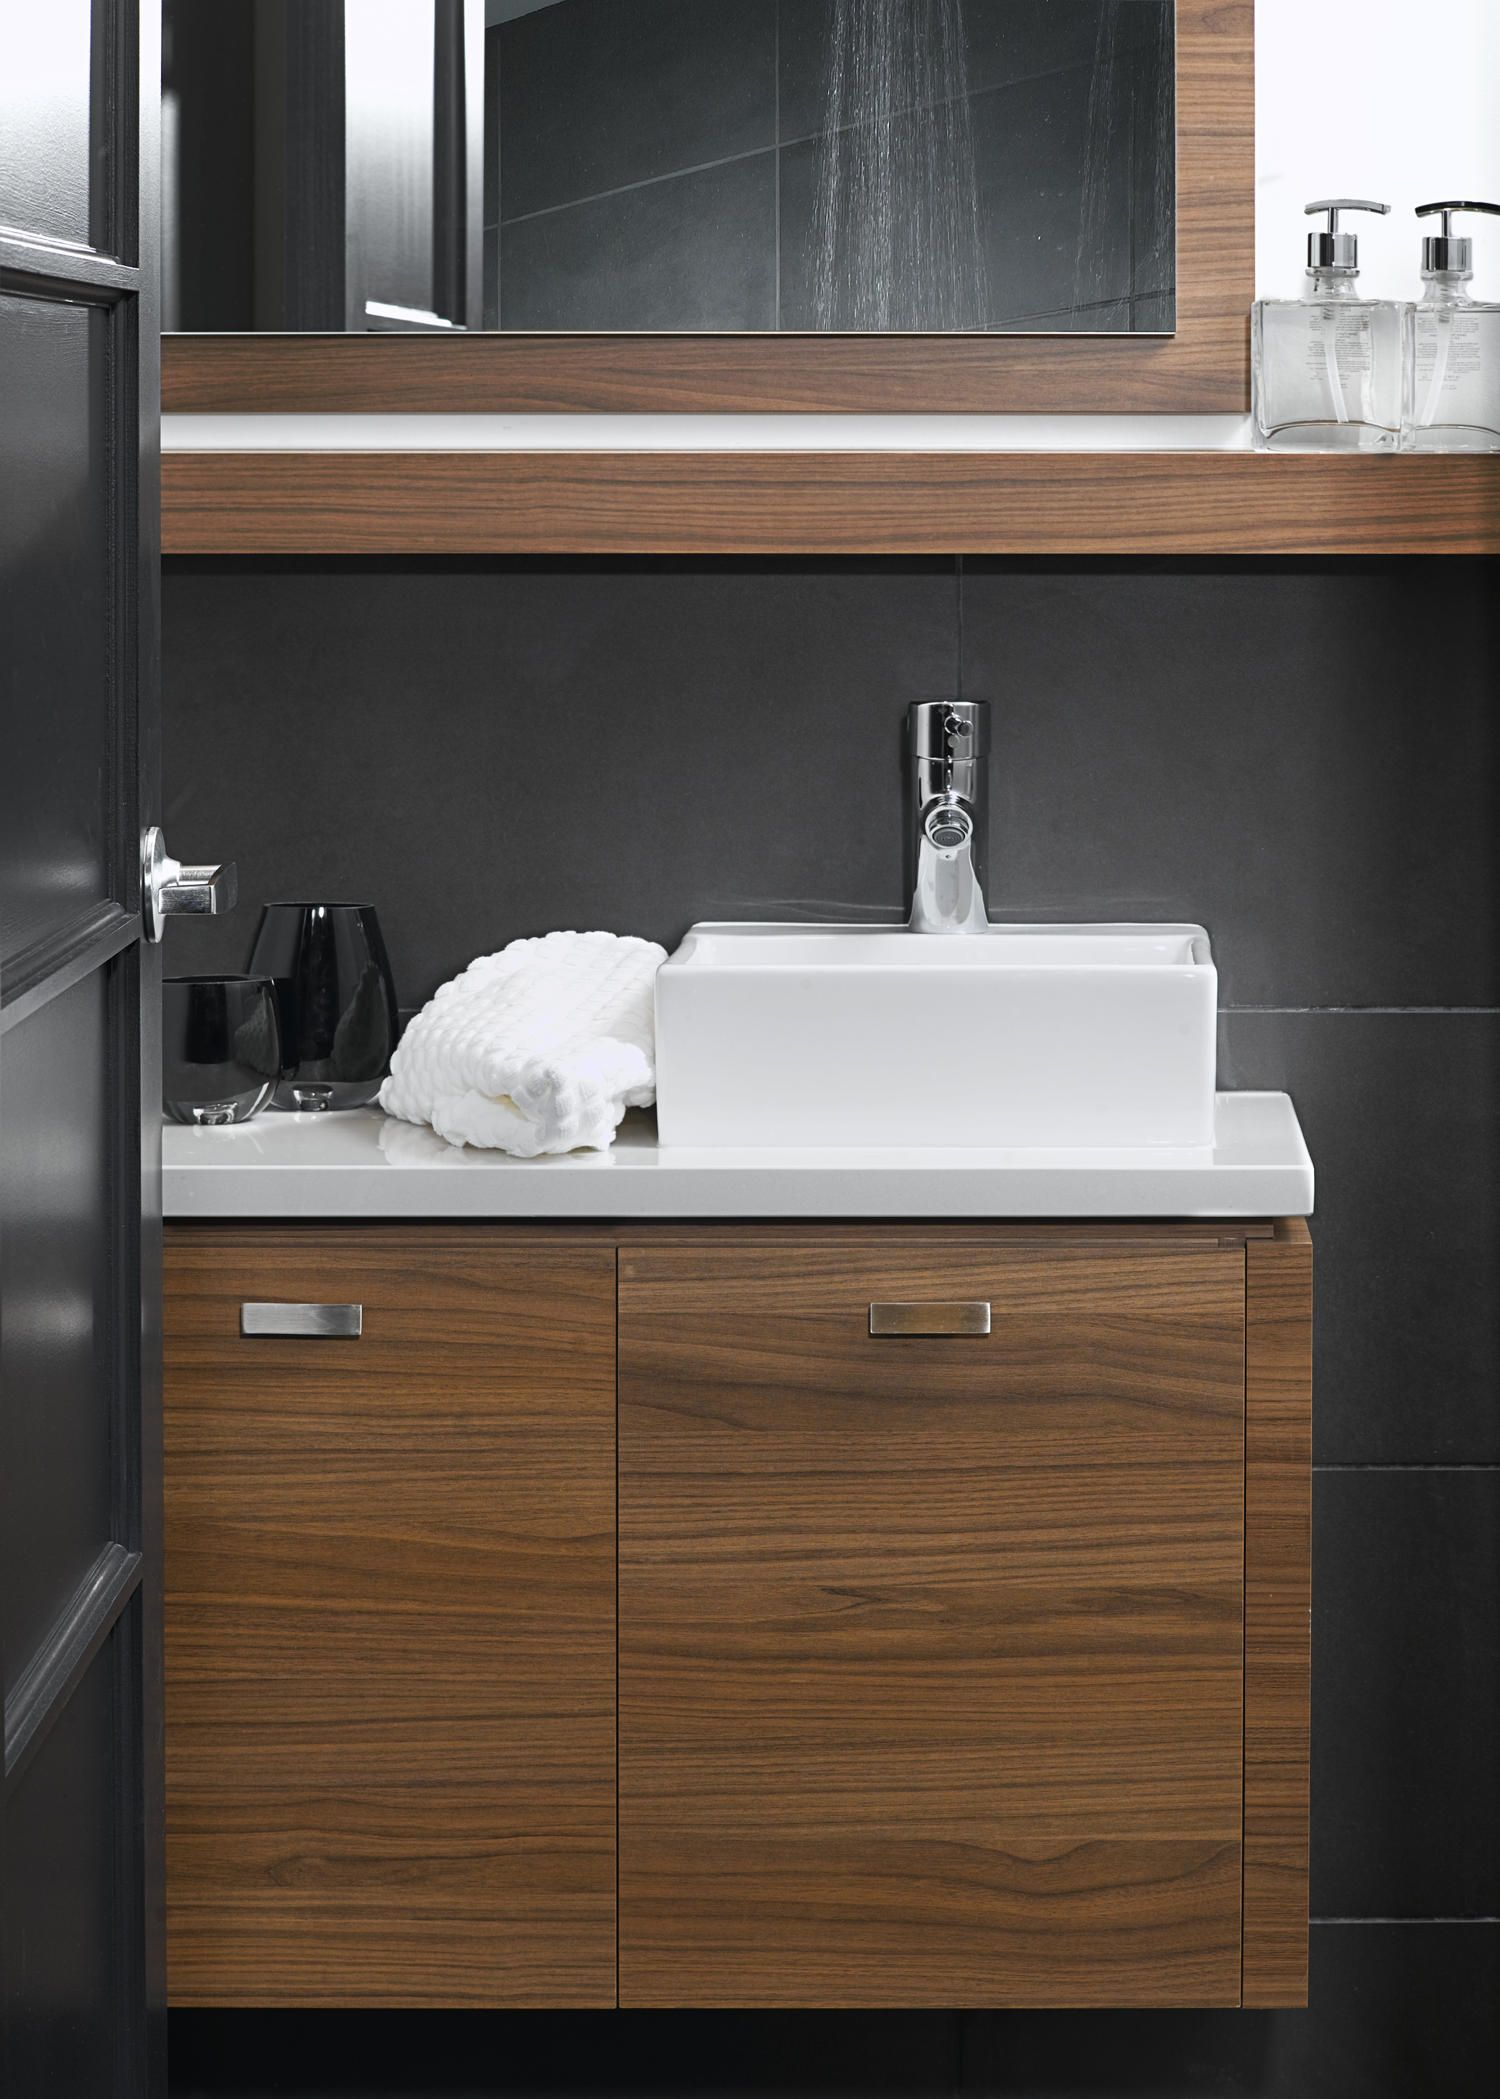 Espana Vanité Mélamine Quartz Vanity Bathroom Vanity Bathroom